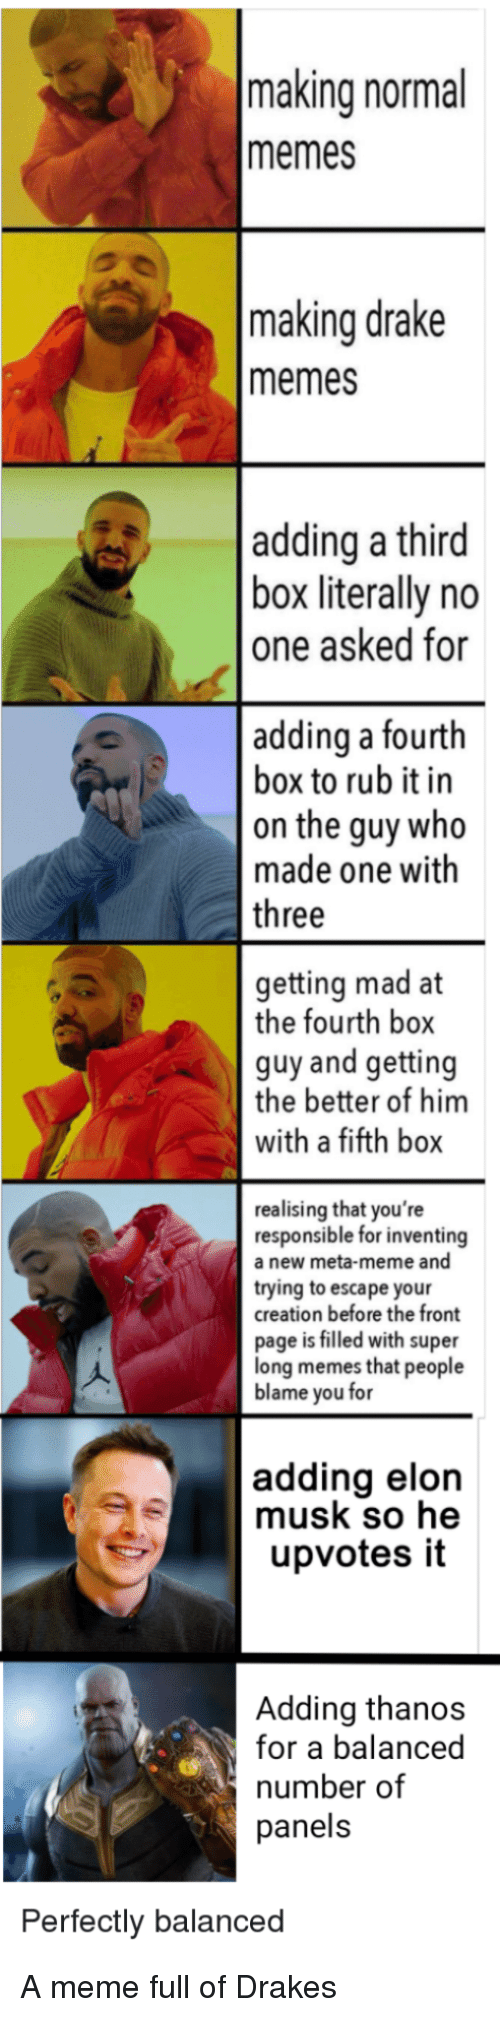 drakes: making normal  memes  making drake  memes  adding a third  box literally no  one asked for  adding a fourth  box to rub it in  on the guy who  made one with  three  getting mad at  the fourth box  guy and getting  the better of him  with a fifth box  realising that you're  responsible for inventing  a new meta-meme and  trying to escape your  creation before the front  page is filled with super  long memes that people  blame you for  adding elon  musk so he  upvotes it  Adding thanos  for a balanced  number of  panels  Perfectly balanced A meme full of Drakes